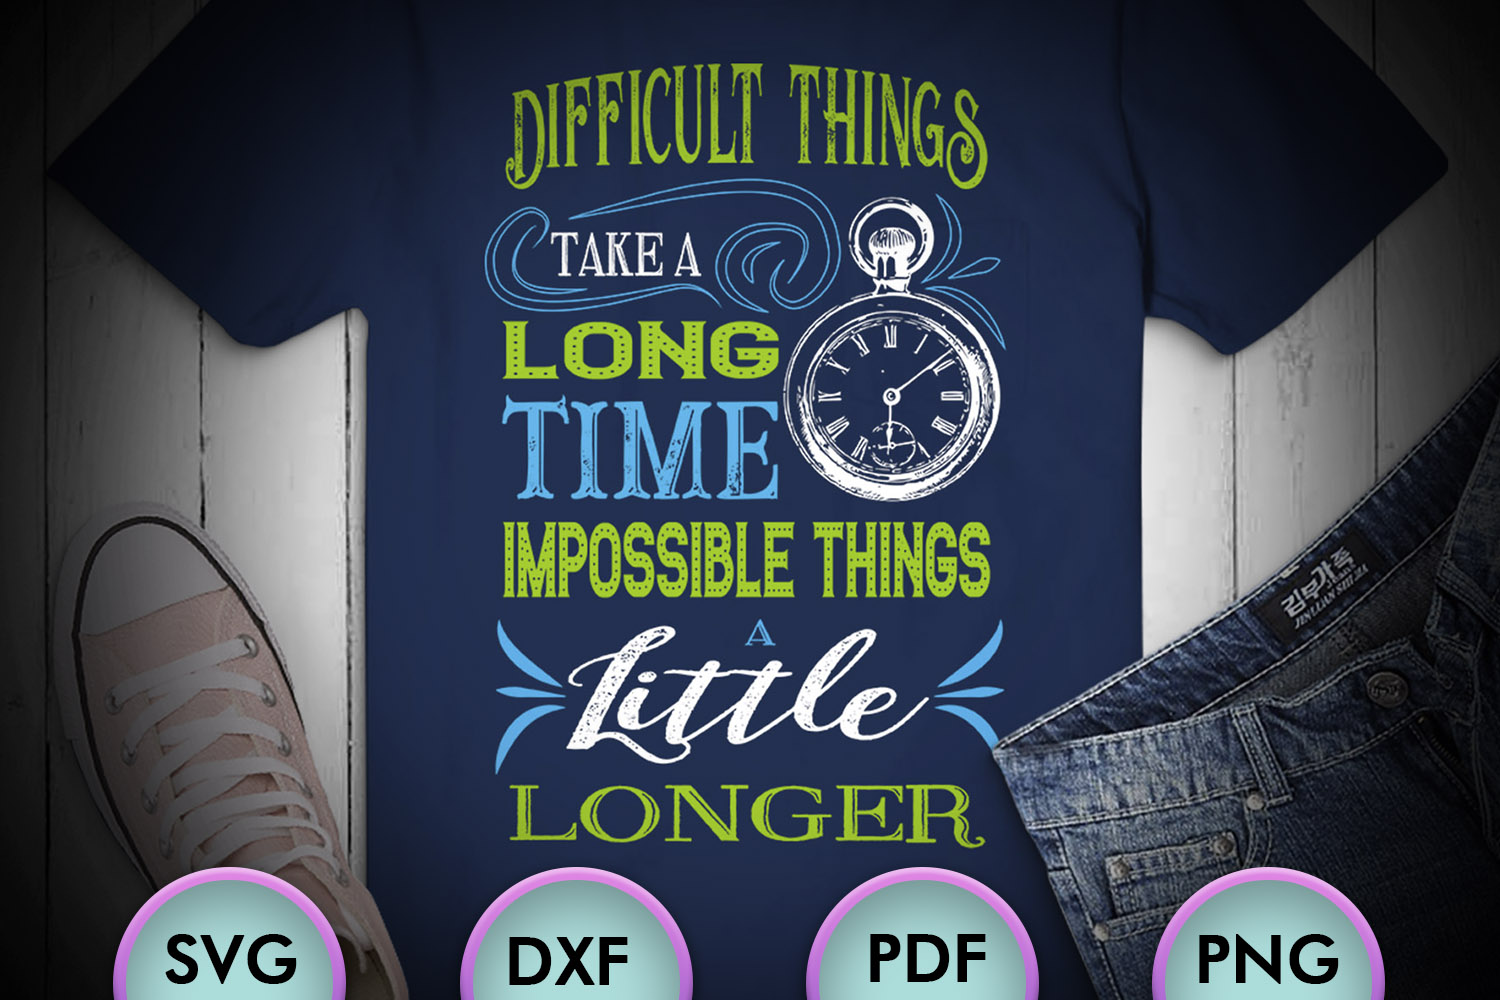 Difficult Things Take a Long Time... SVG Design example image 1